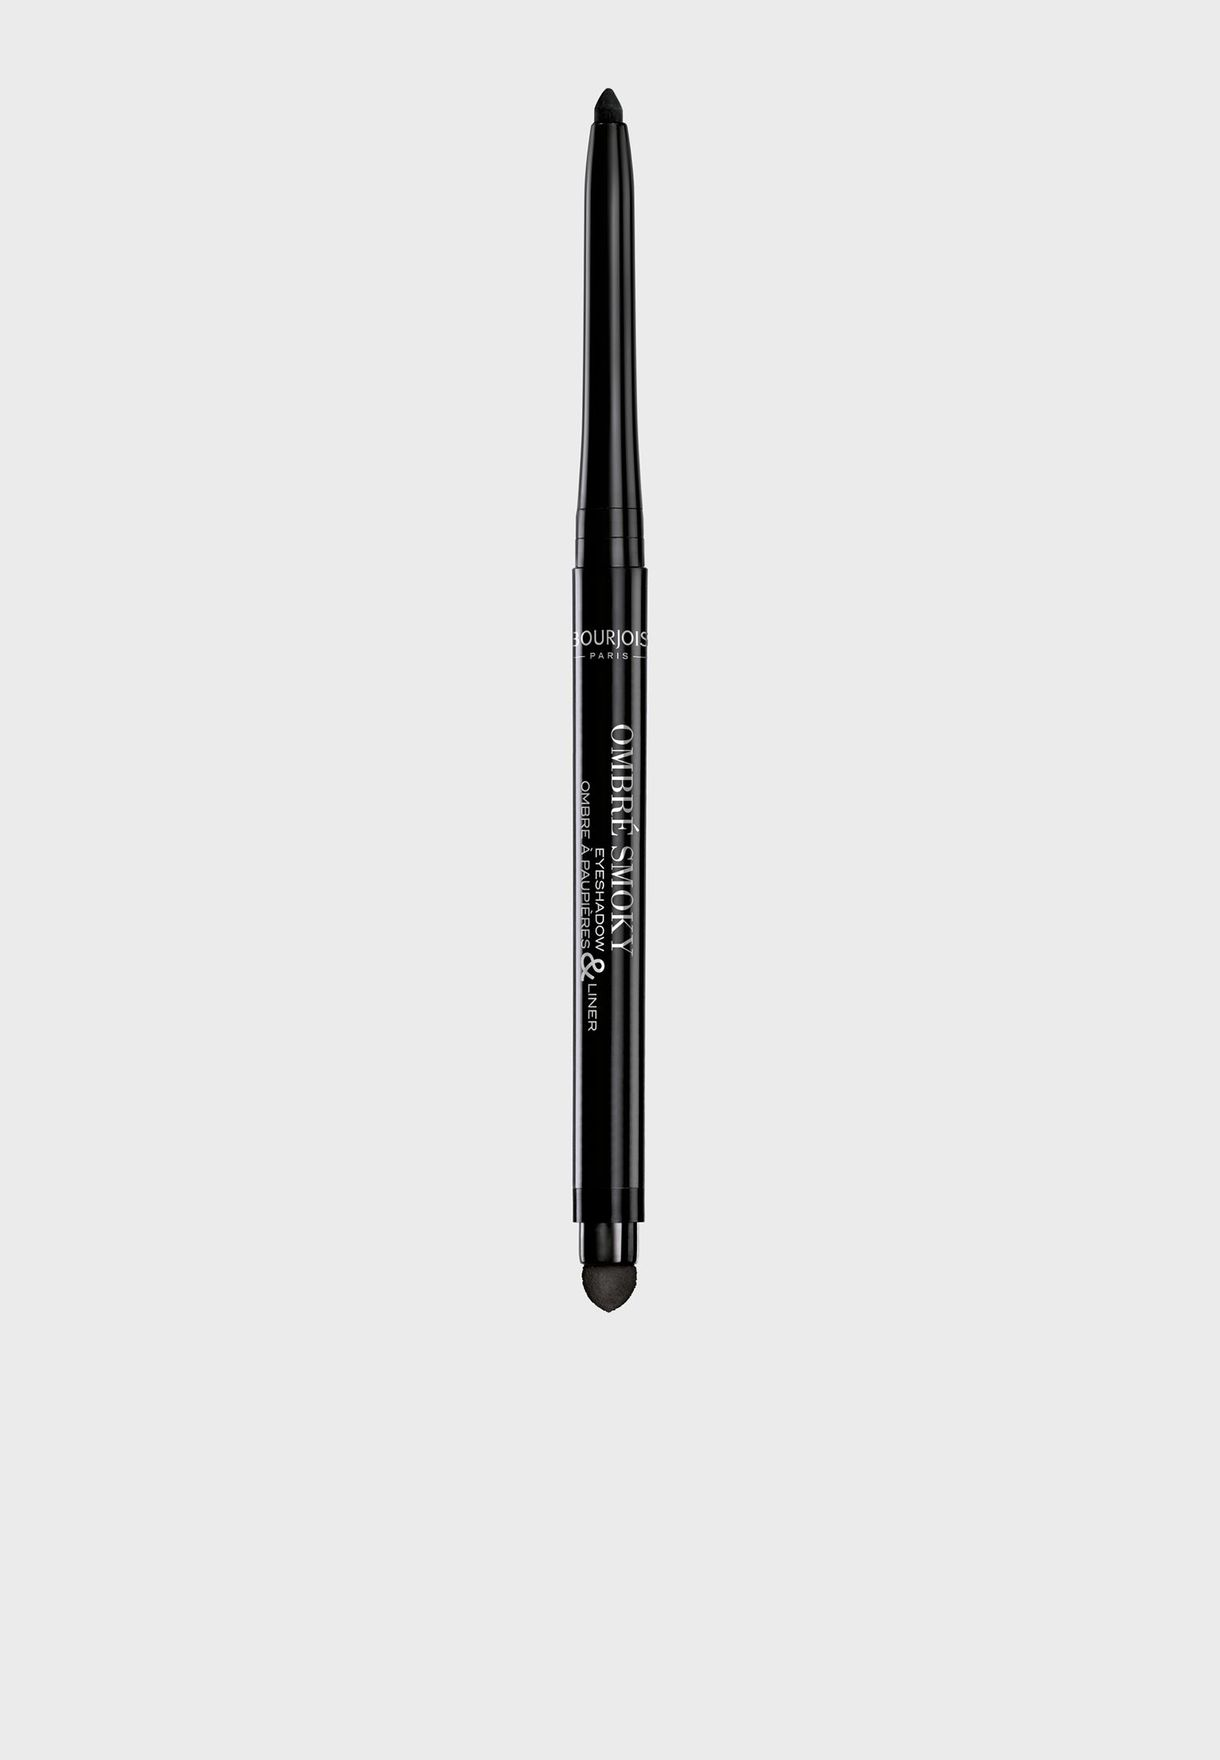 Ombré Smoky Eyeshadow & Liner 01 Black